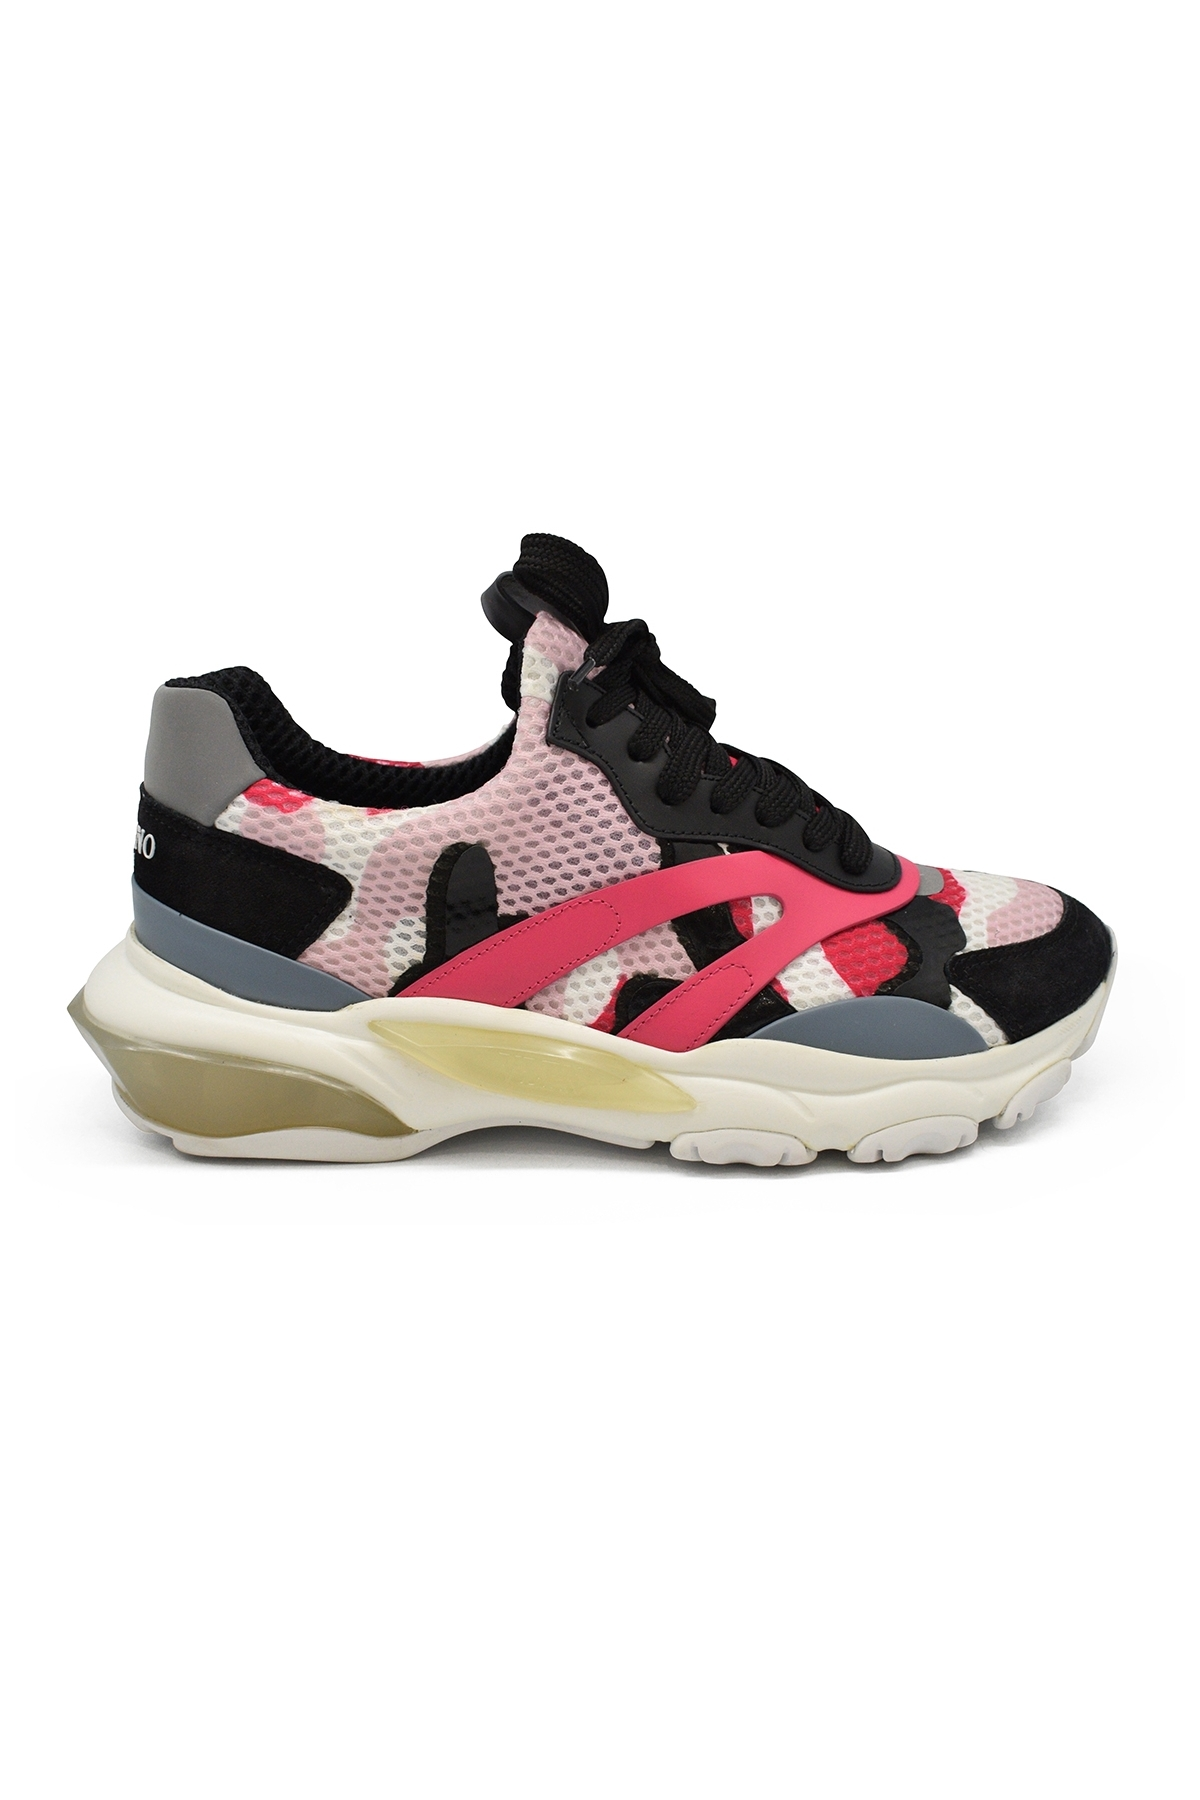 Valentino Bounce sneakers in white, black and pink camouflage suede, leather and fabric with oversized sole and reflecting effec